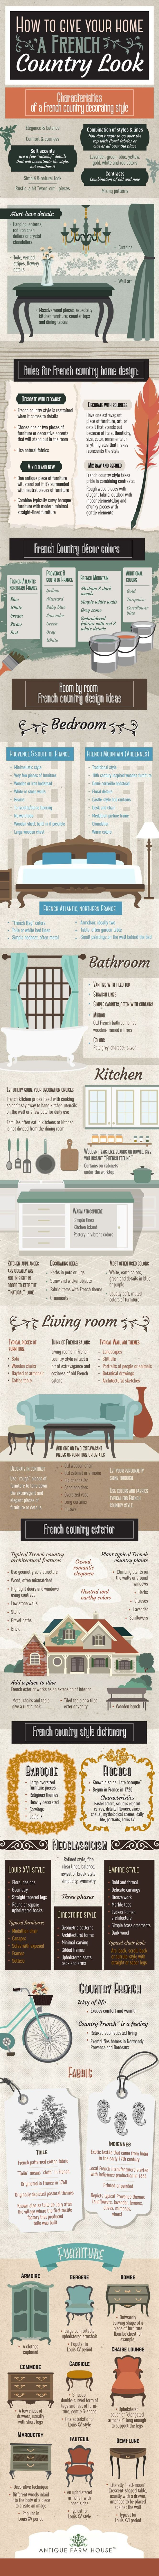 25 Best Ideas About French Provincial Decorating On Pinterest Style Bedrooms Room Decor And Inspired Bedroom